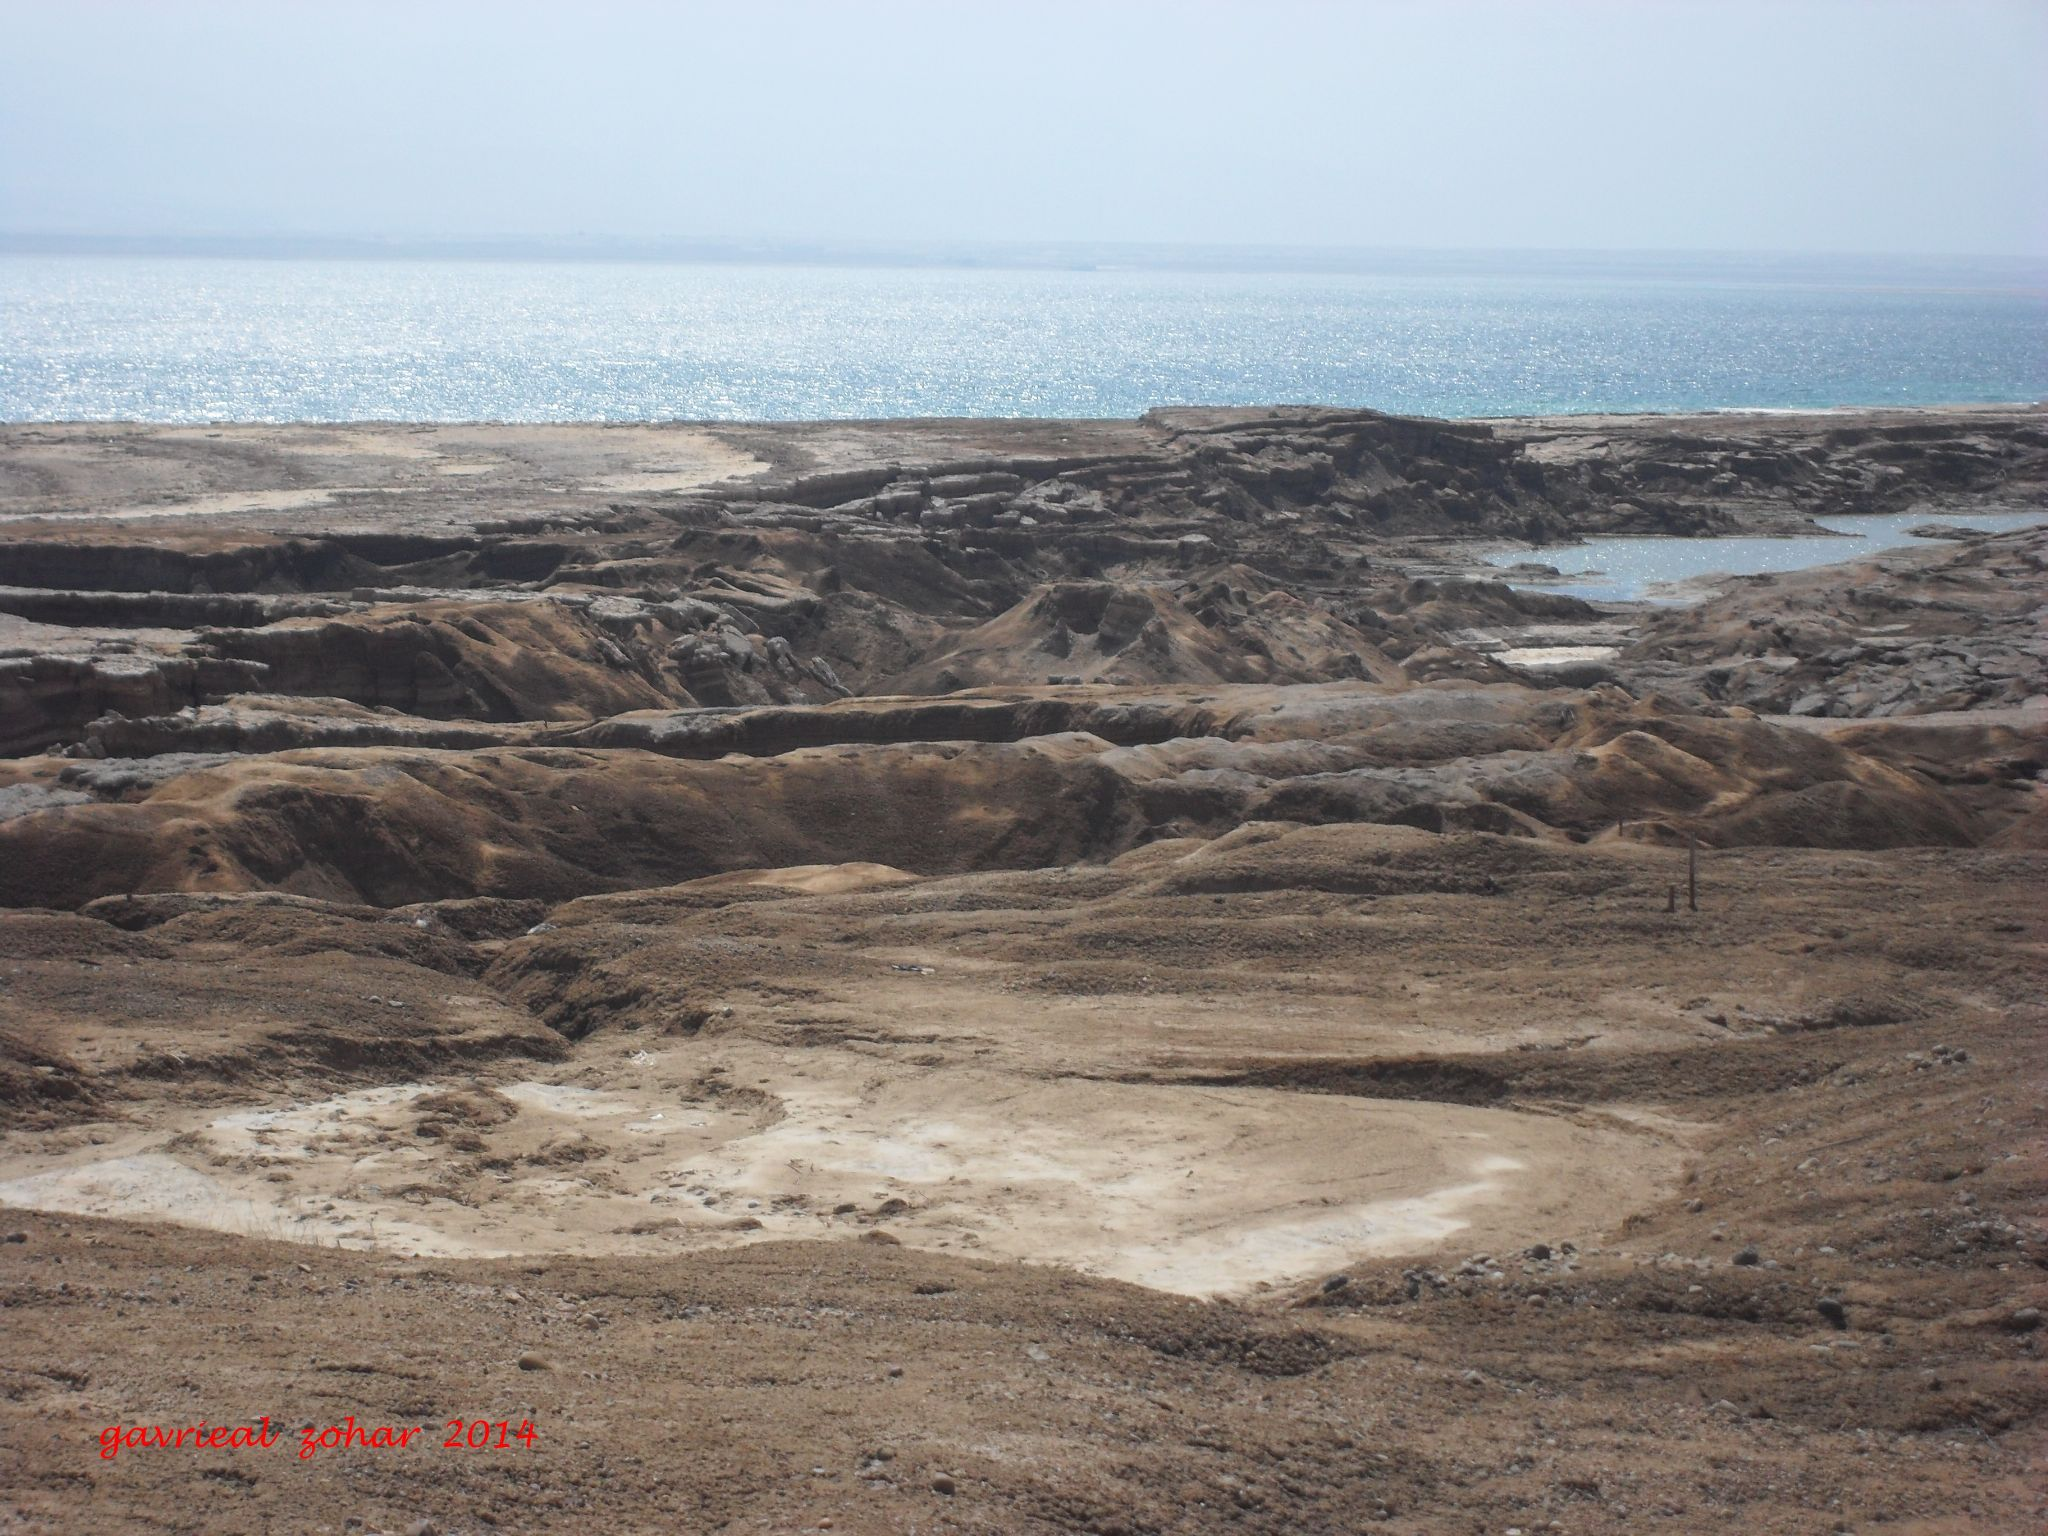 sink hole neer the dead sea by gavriealzohar